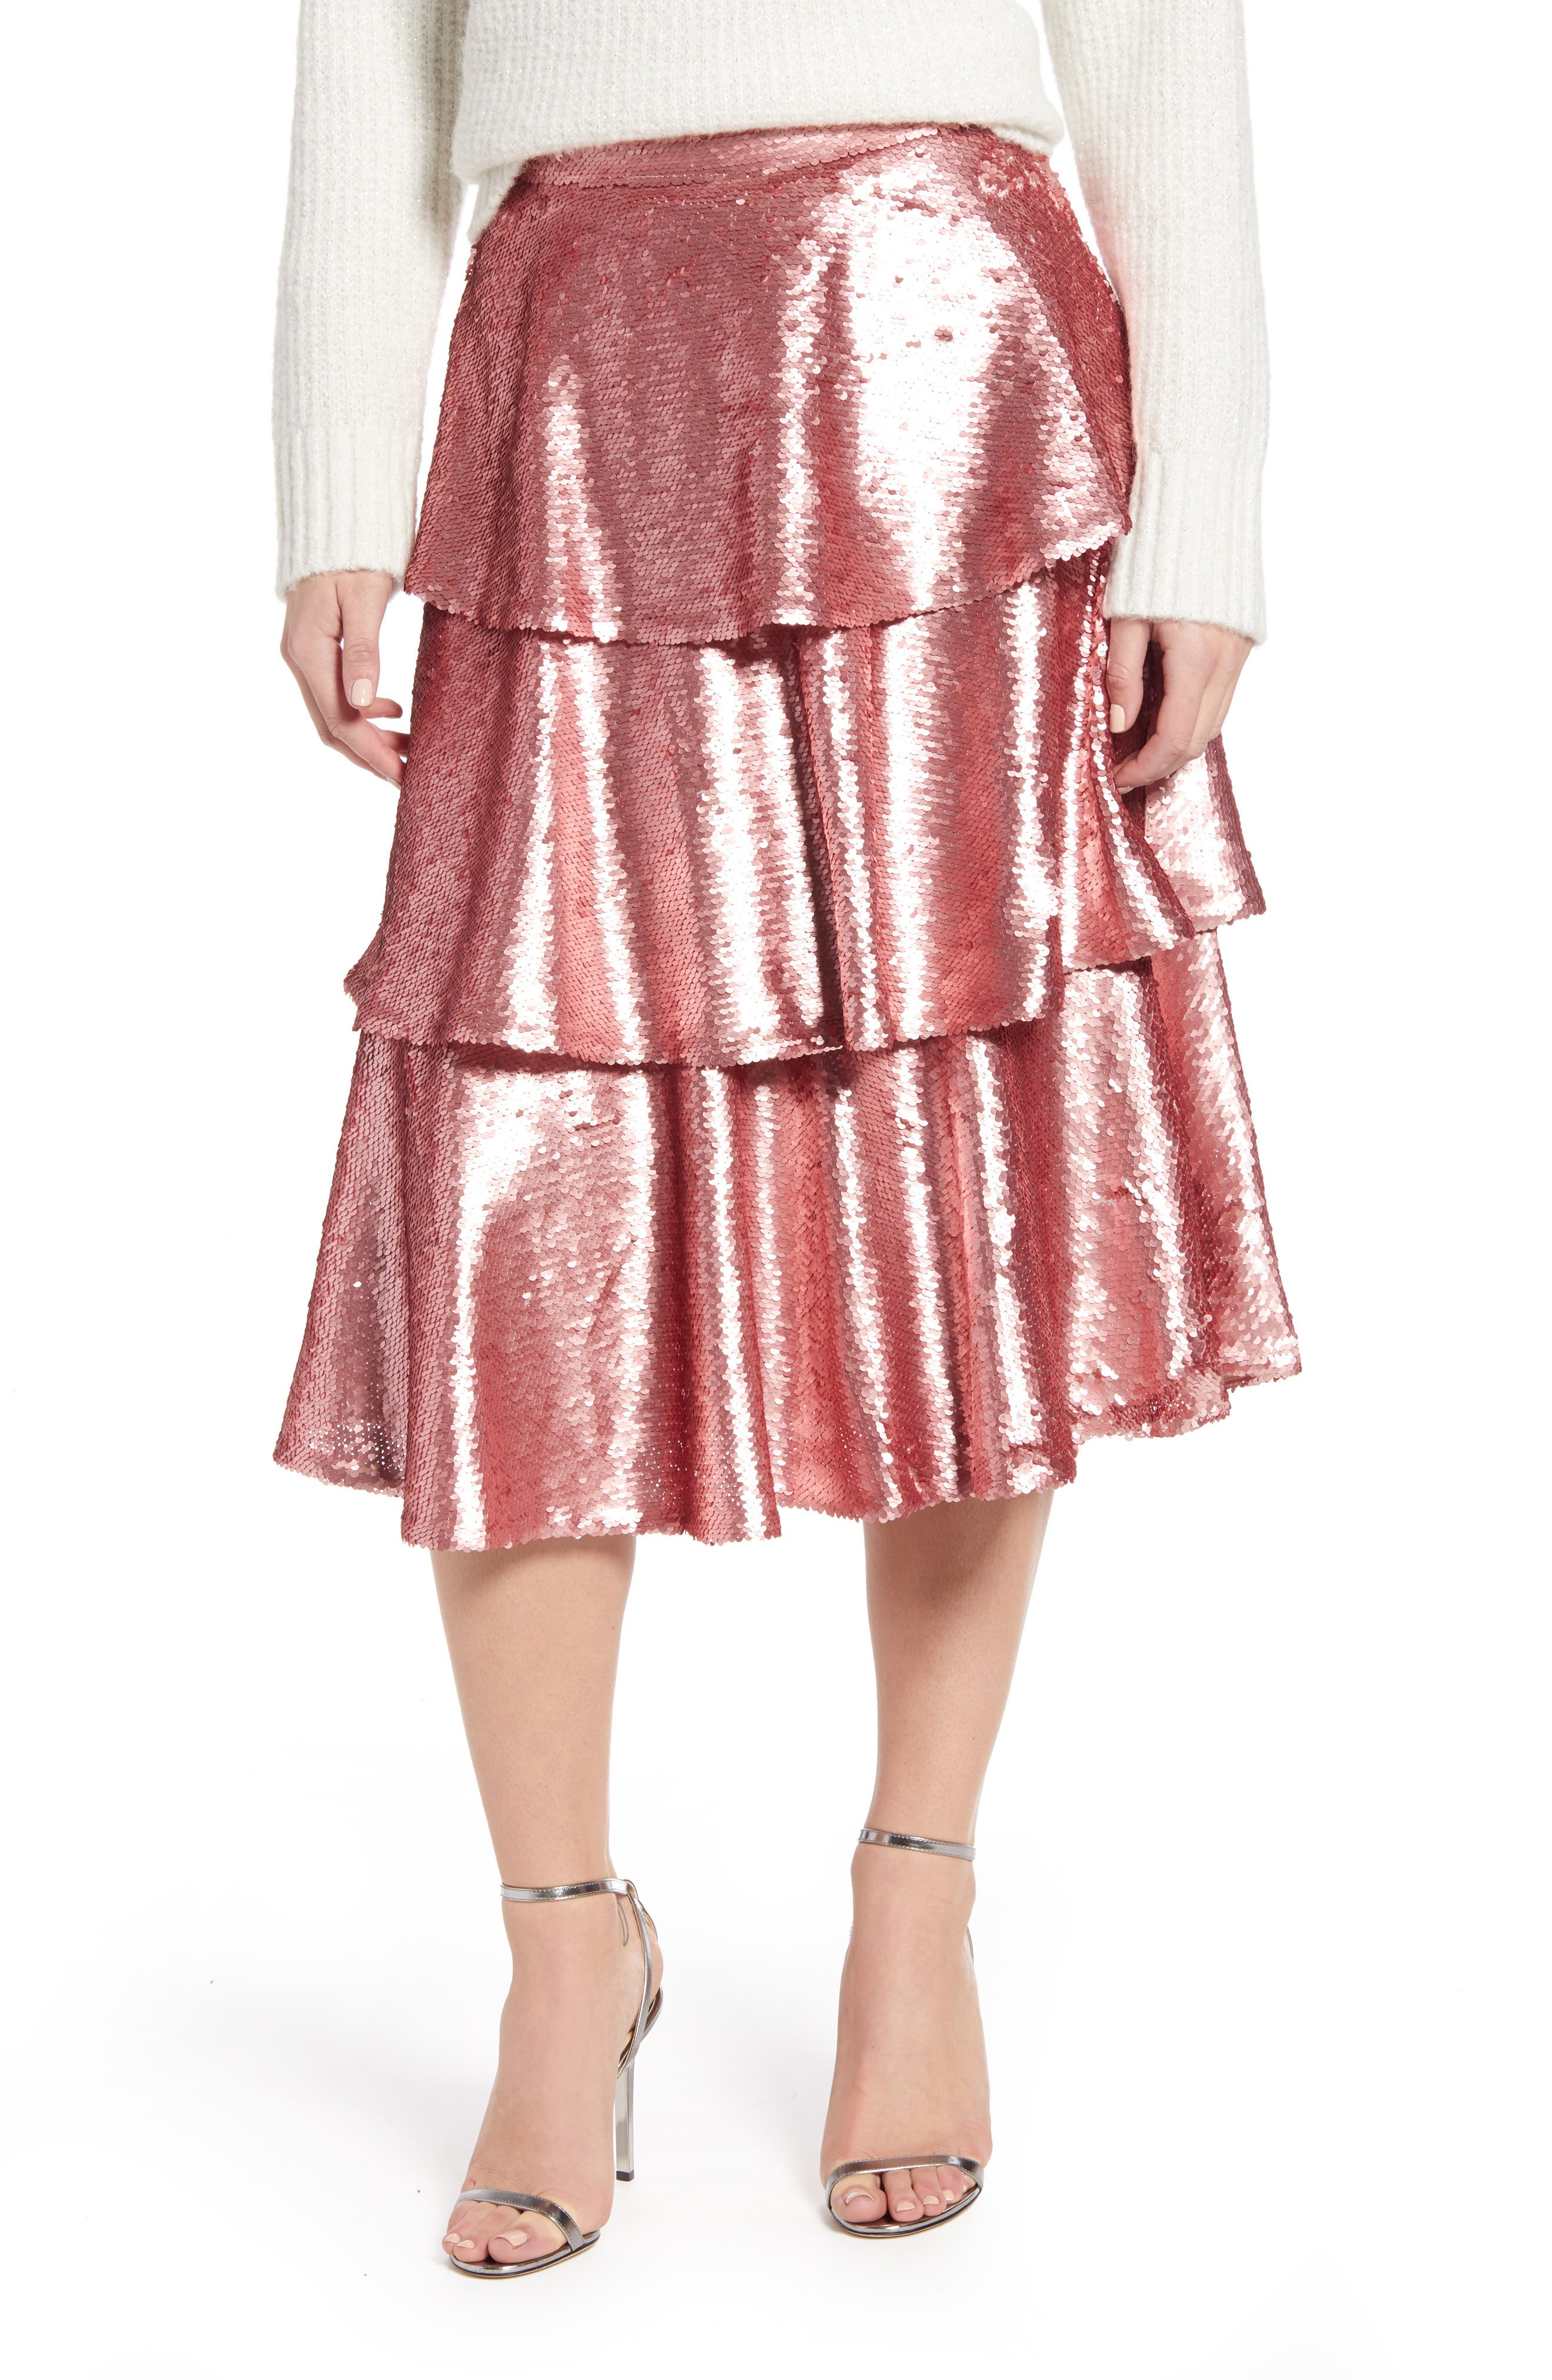 Image of RACHEL PARCELL Tiered Sequin Skirt